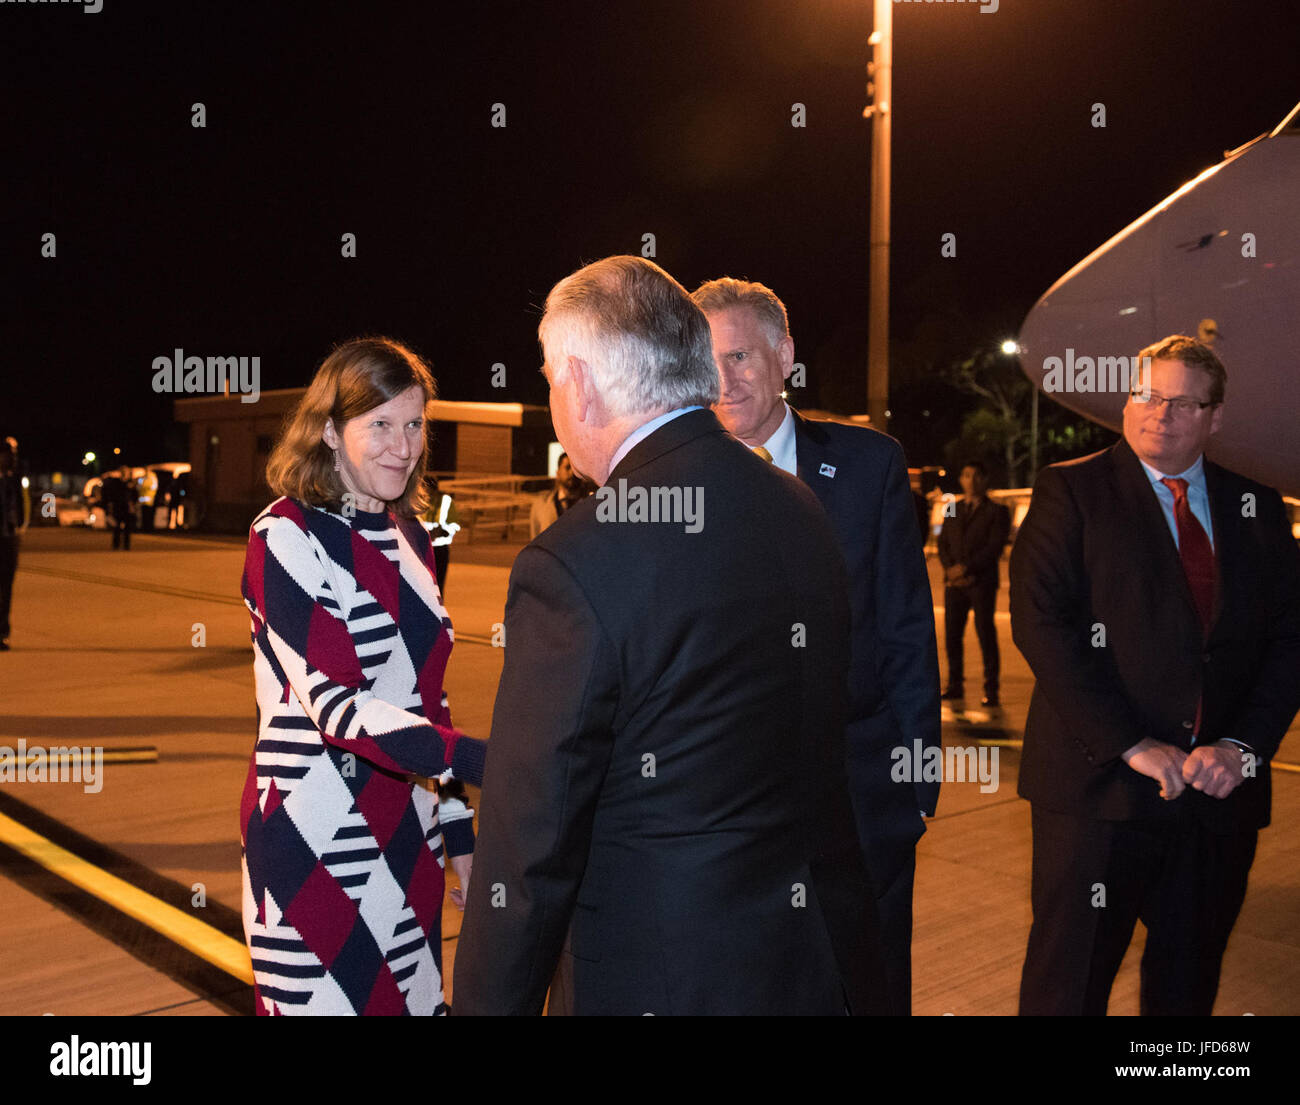 U.S. Secretary of State Rex Tillerson is greeted by U.S. Consul General Valerie Fowler ahead of the Australia–U.S. - Stock Image